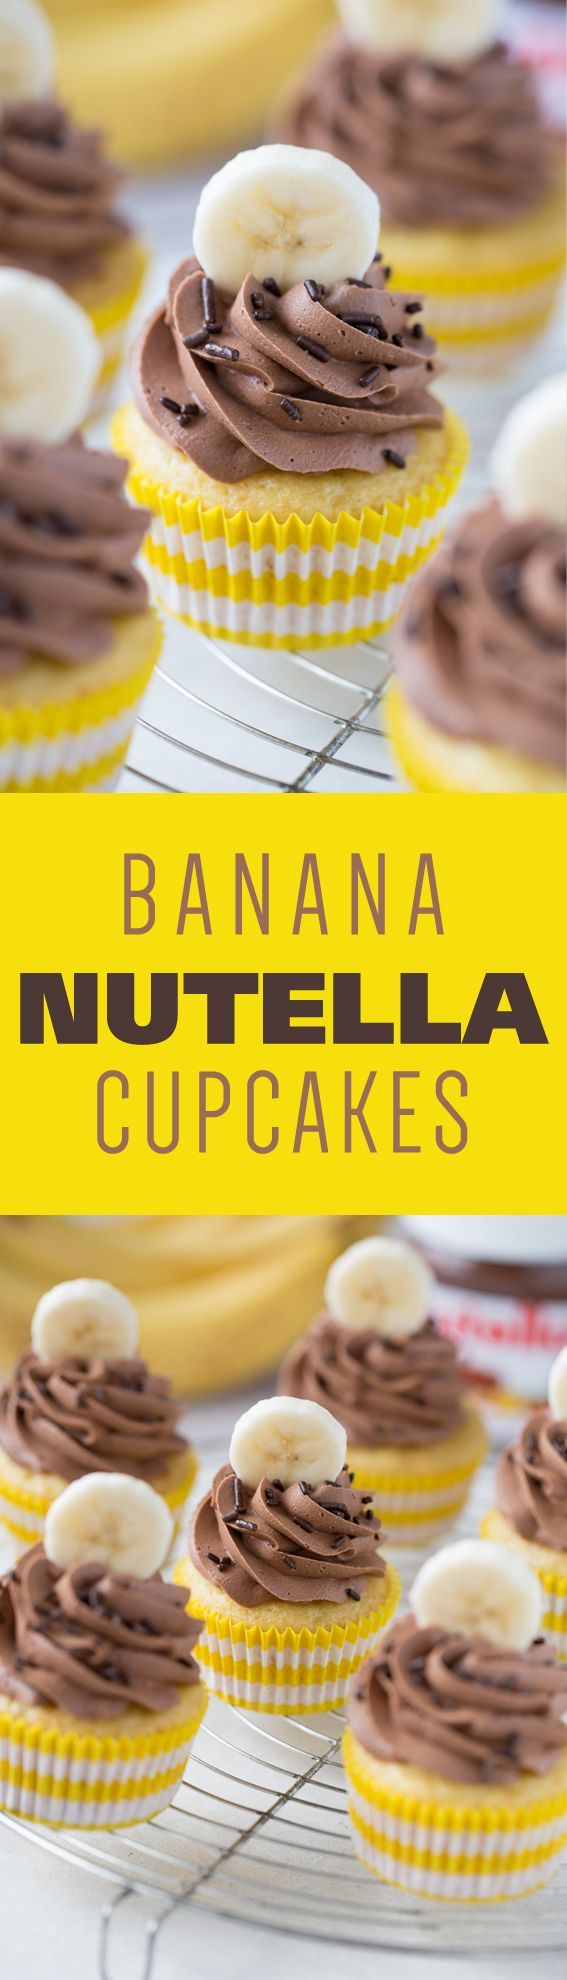 Banana Nutella Cupcakes start with a light and airy banana cake. Topped with Nutella frosting, these cupcakes will become your favorite! from @bakingaddiction